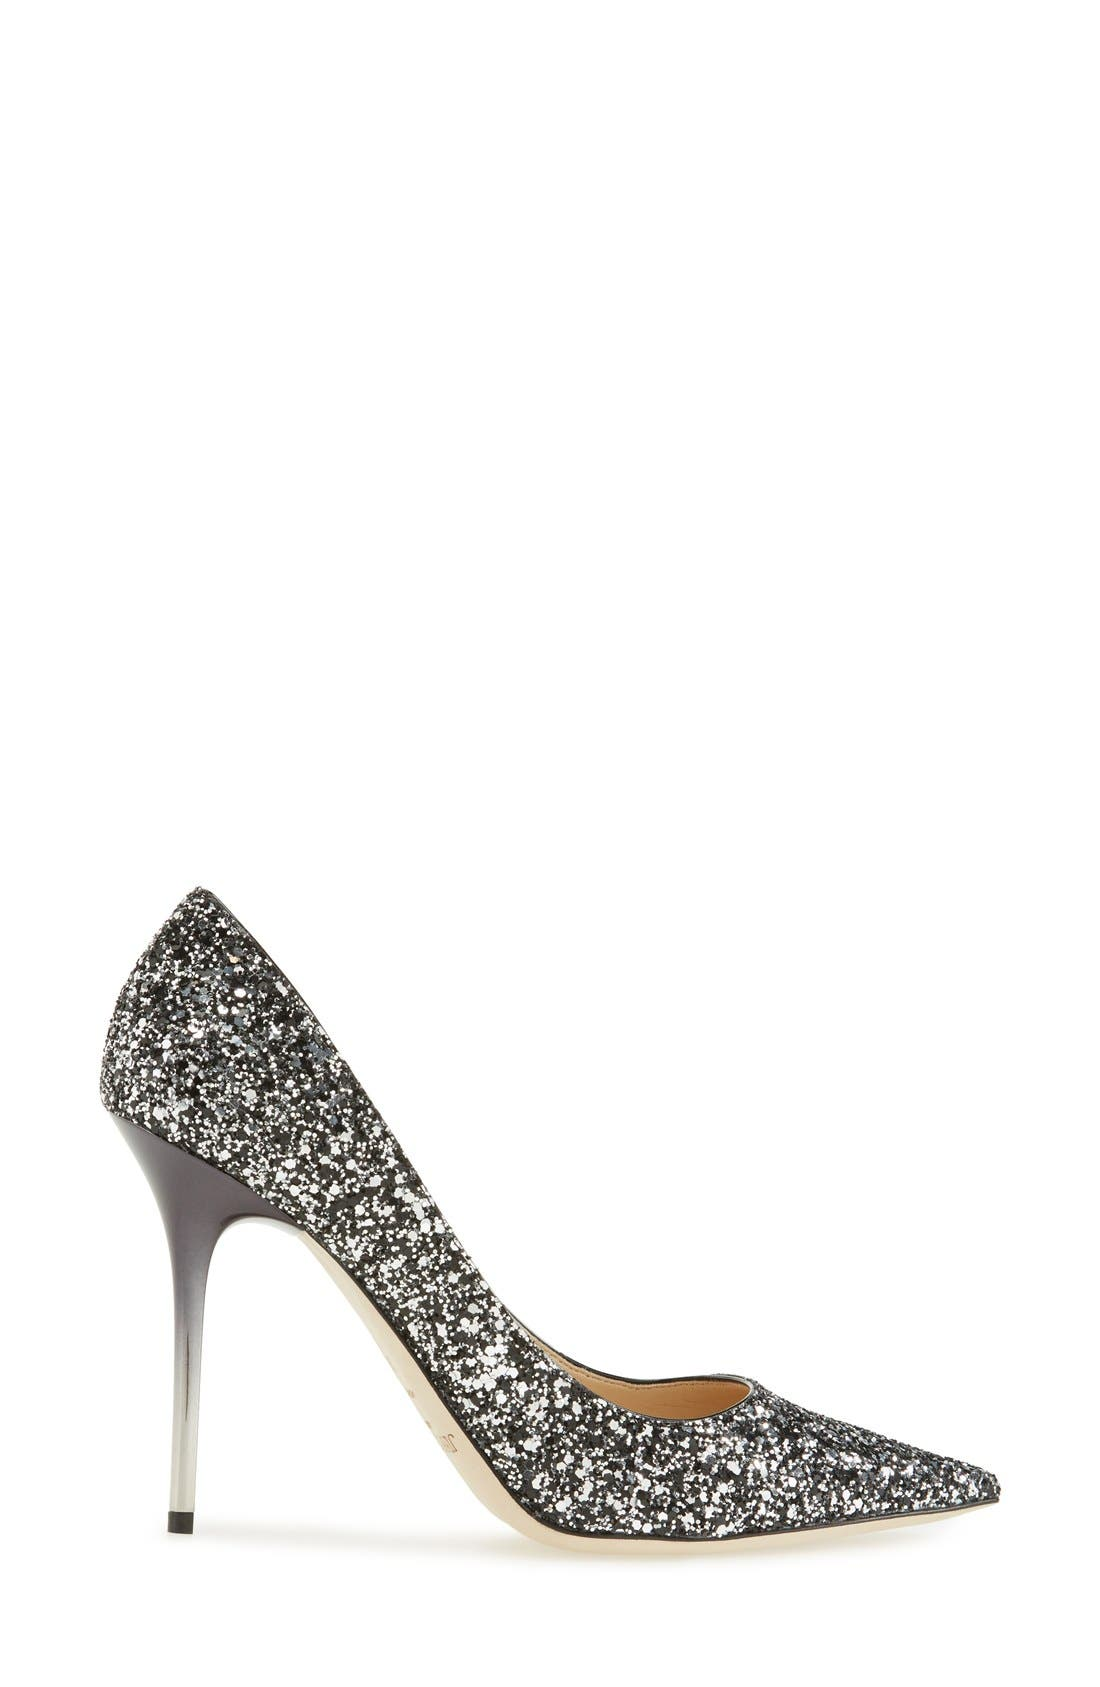 'Abel' Pointy Toe Pump,                             Alternate thumbnail 3, color,                             002